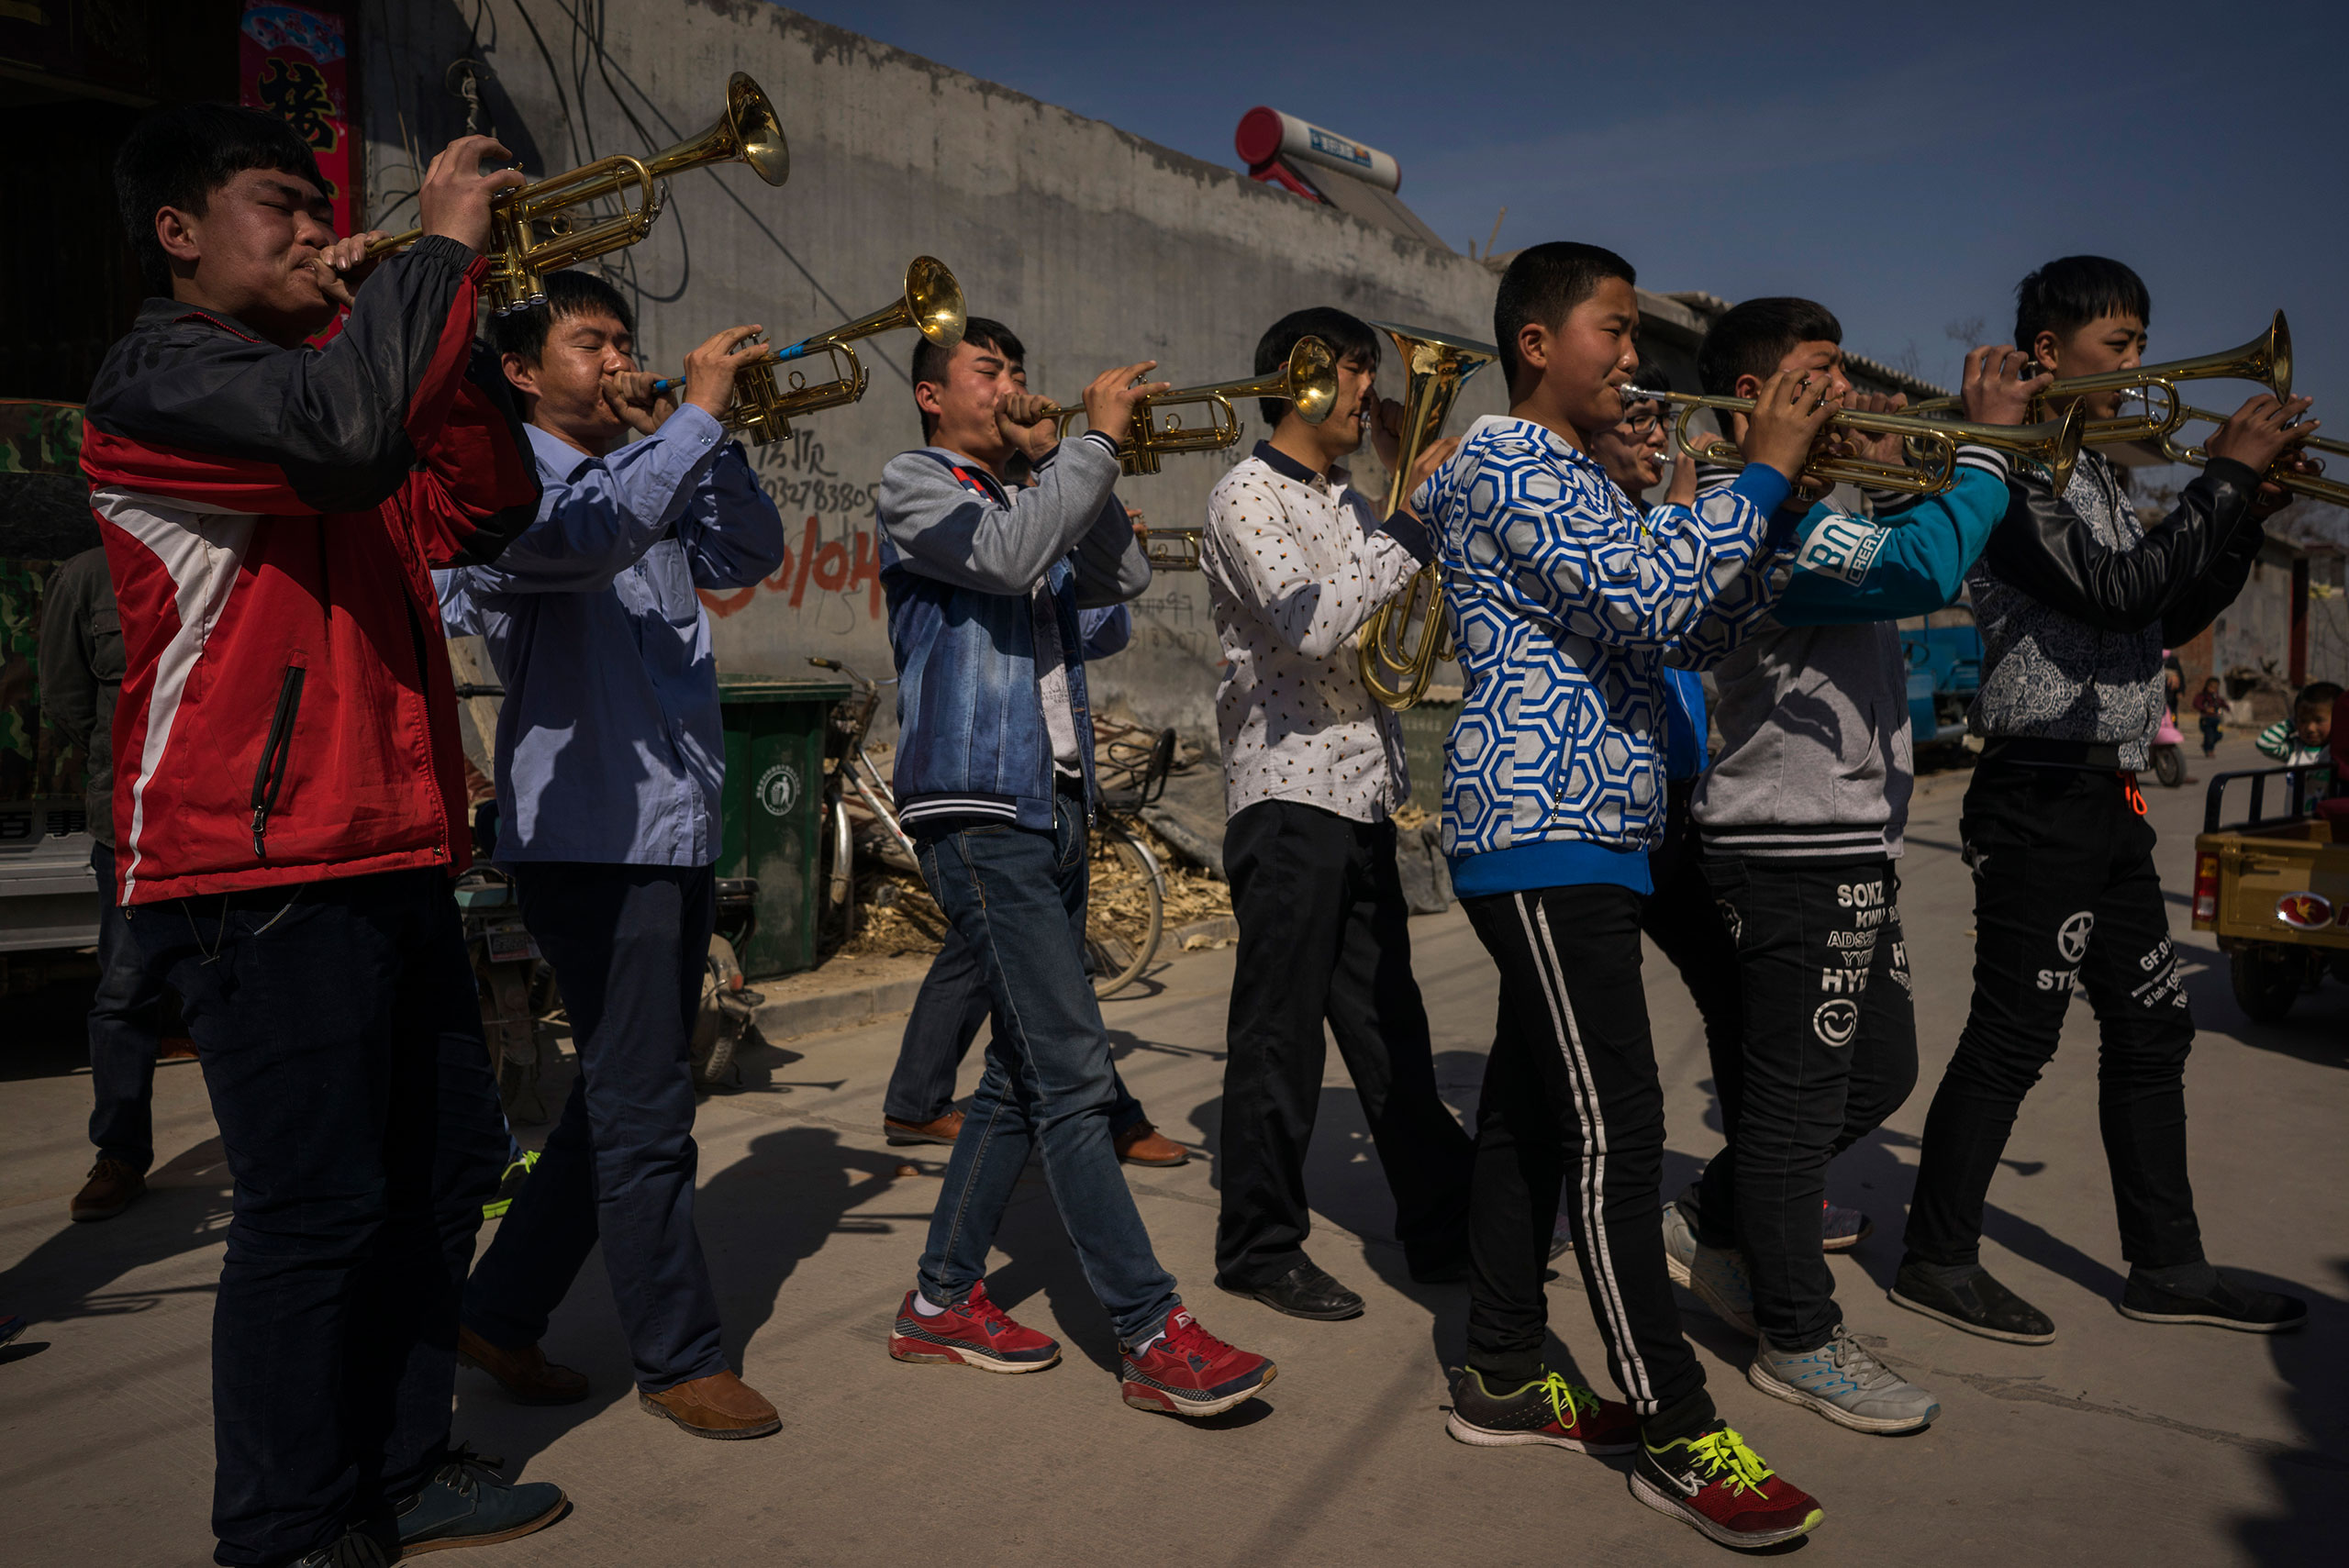 A band plays ahead of an underground Easter Sunday Mass led by dissident Catholic Priest Dong Baolu in the yard of his house in Youtong village, Shijiazhuang, China, March 27, 2016.